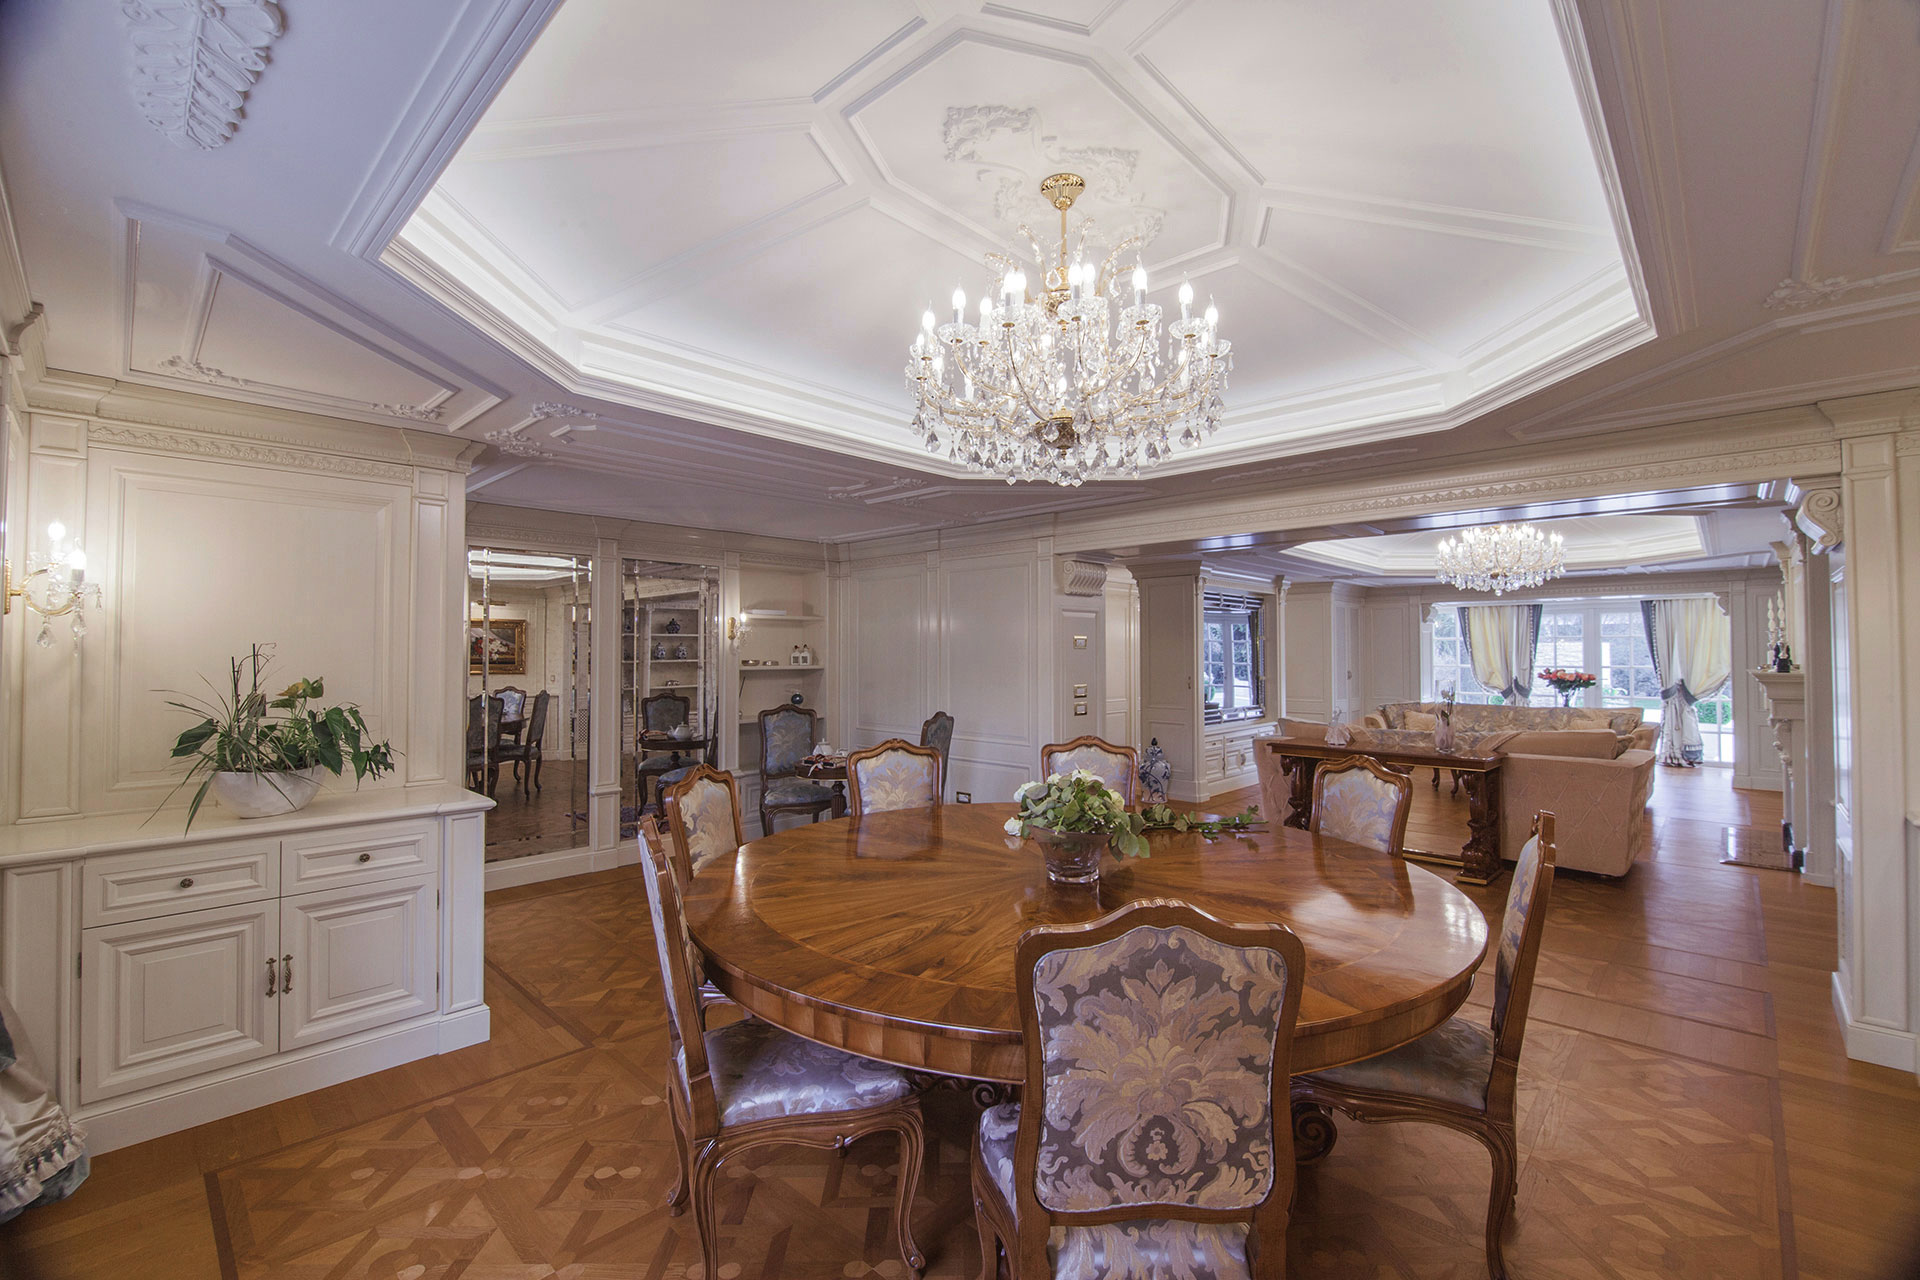 Faoma bespoke classic dining room